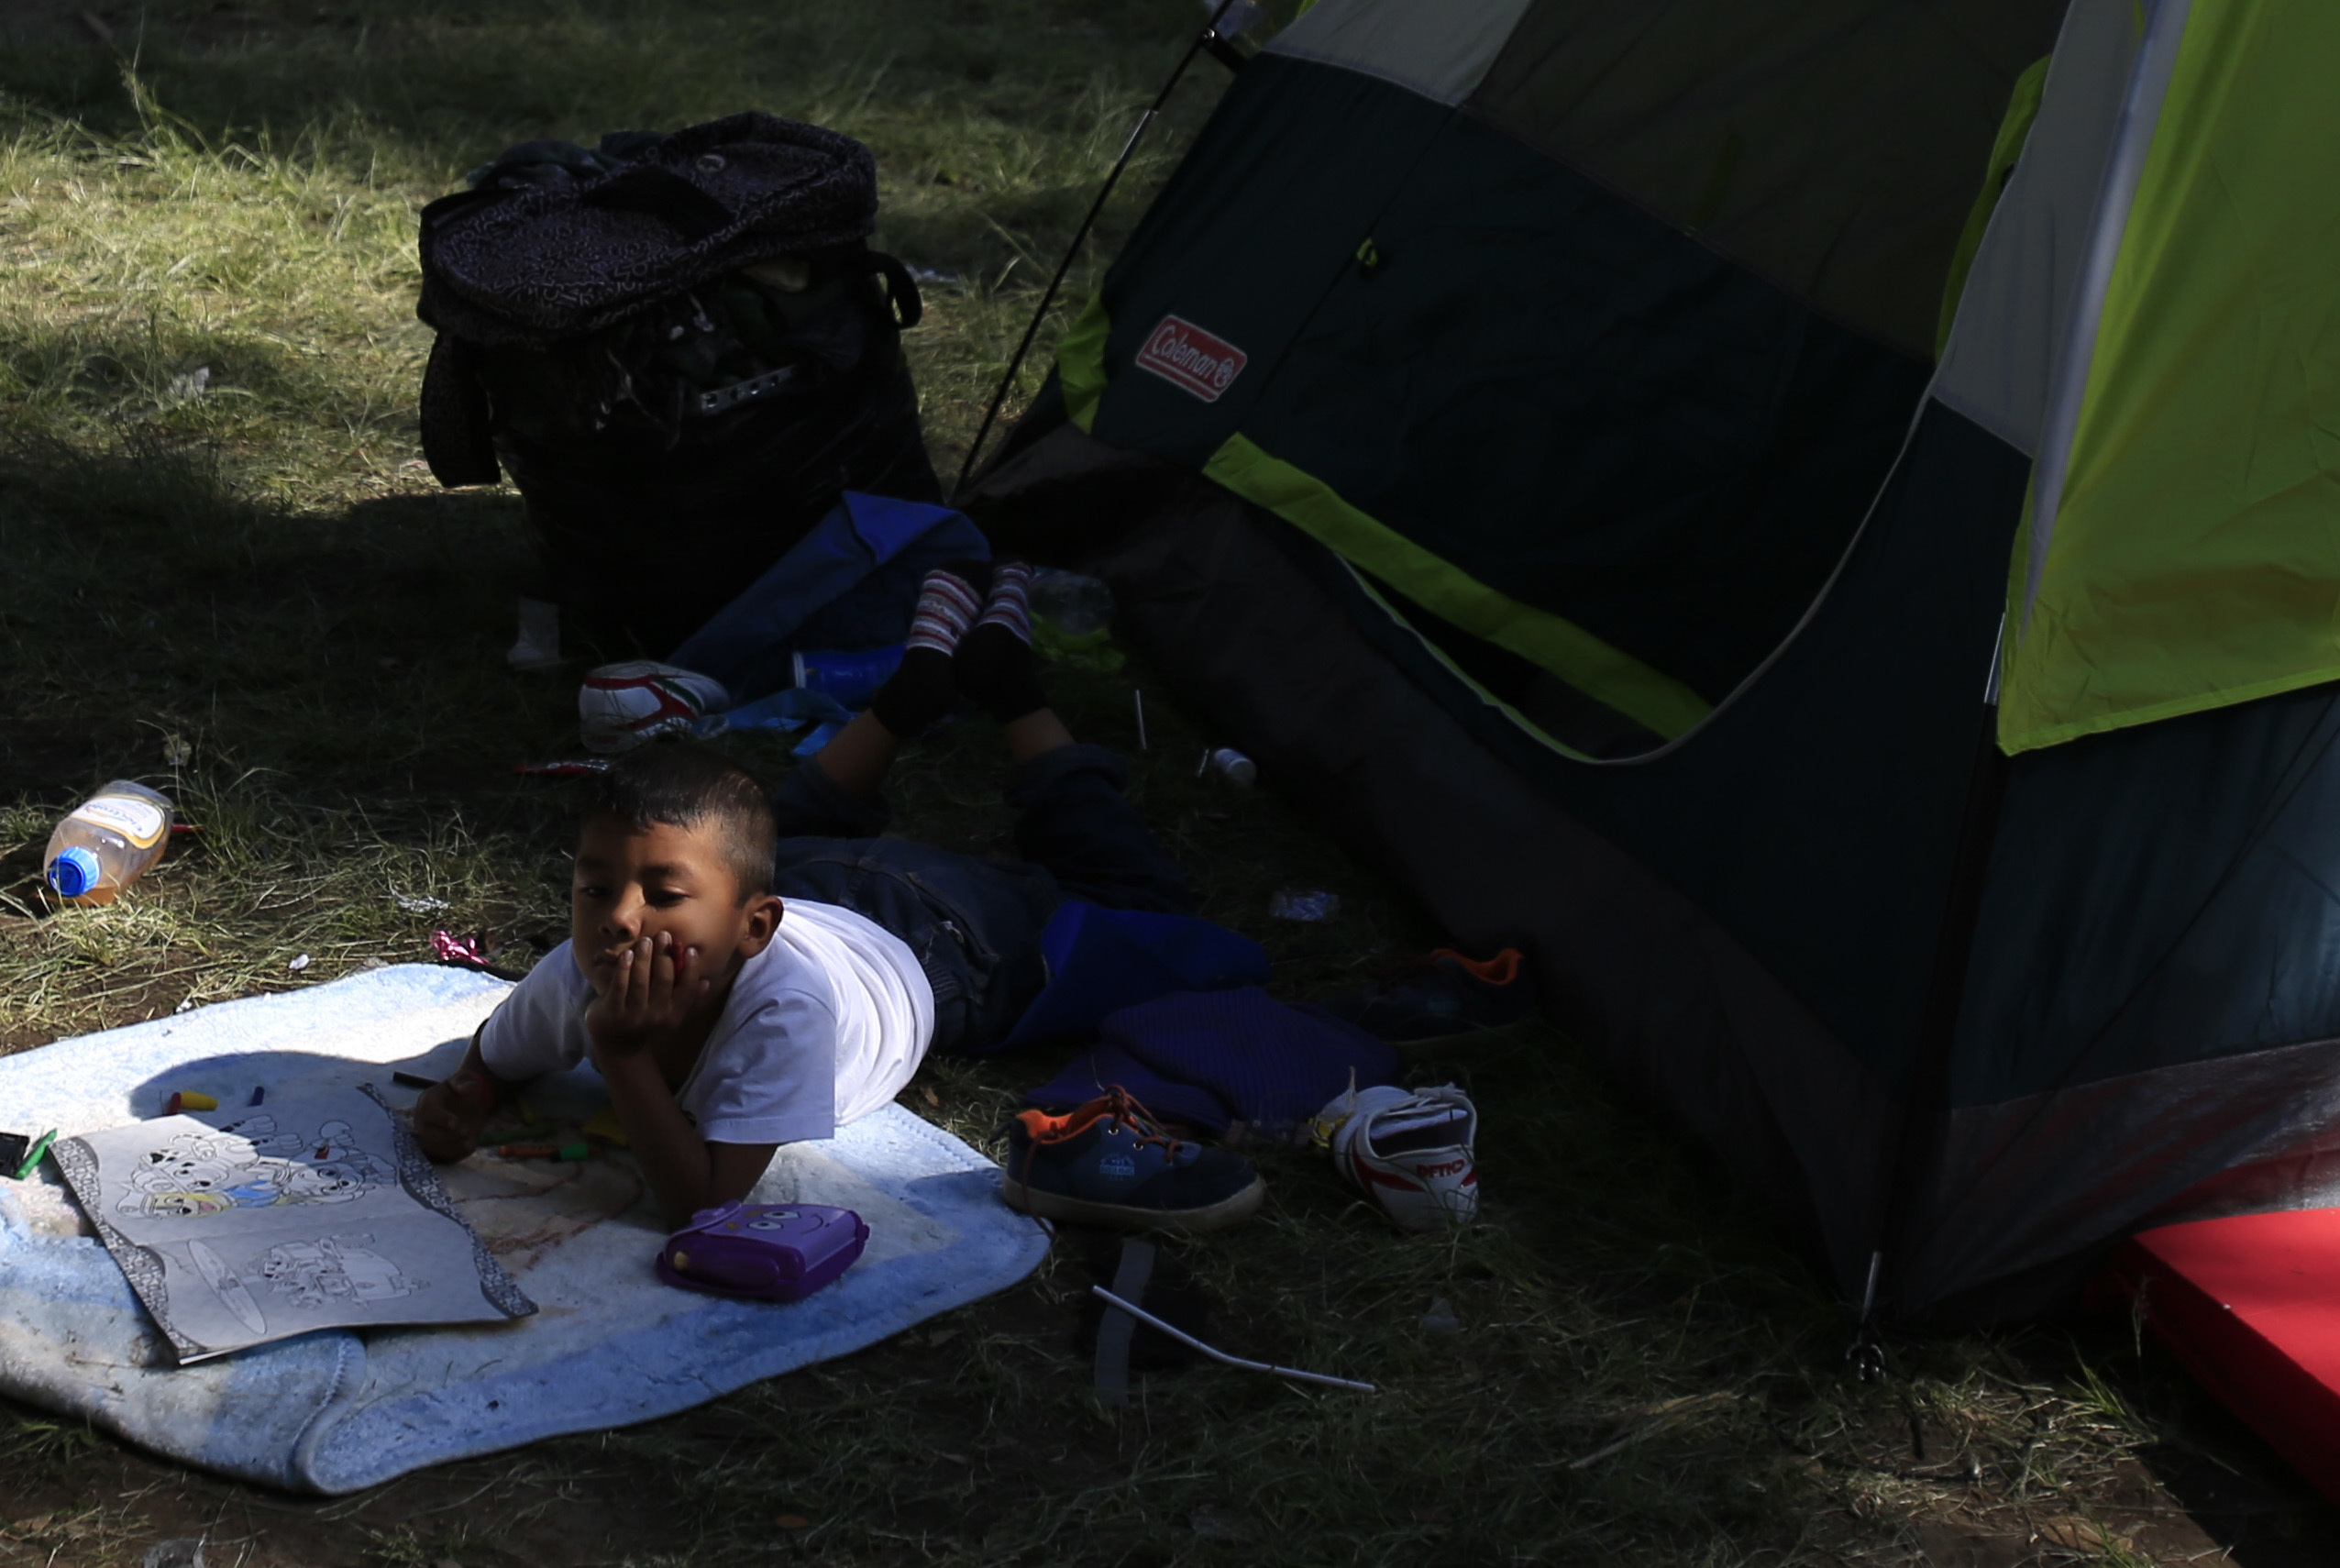 A boy lies with a coloring book outside a tent inside the sports complex where thousands of migrants have been camped out for several days in Mexico City, Friday, Nov. 9, 2018.